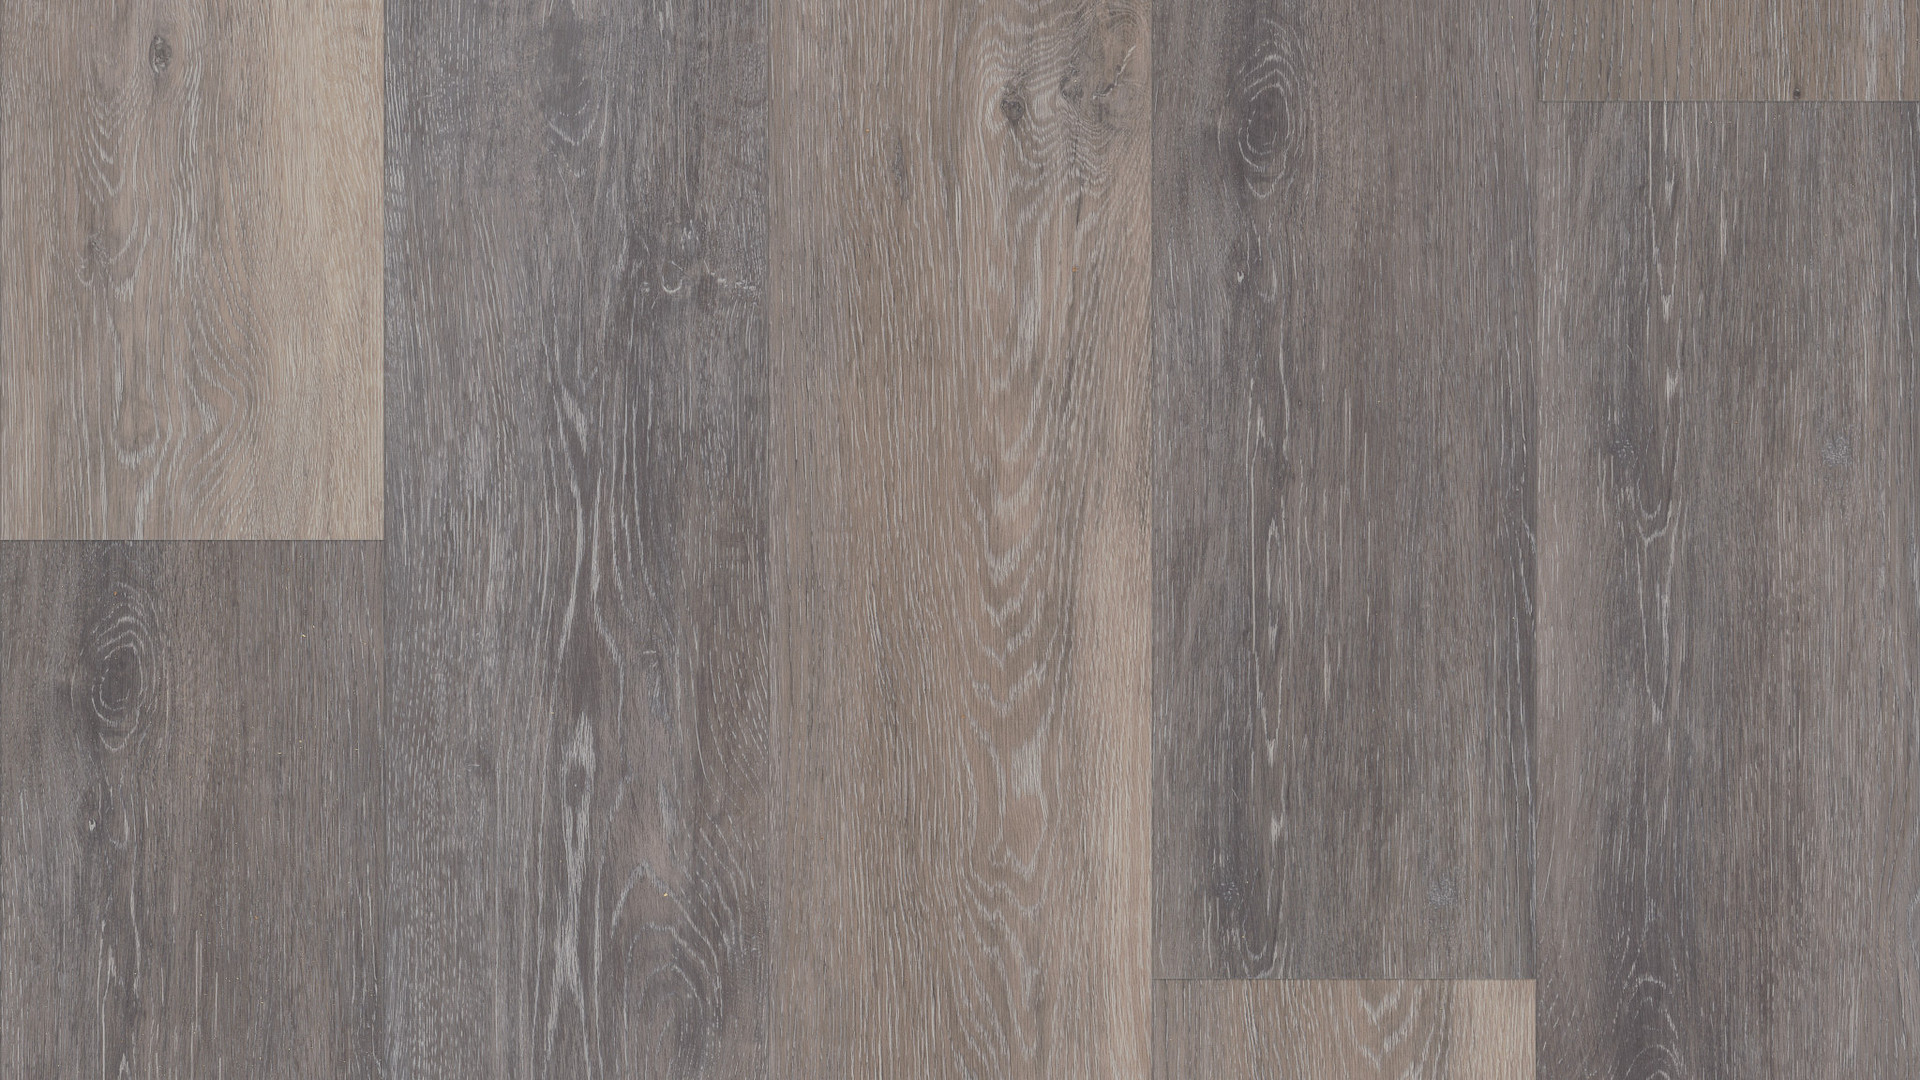 Alabaster Oak Luxury Vinyl Plank Flooring Coretec Plus 7